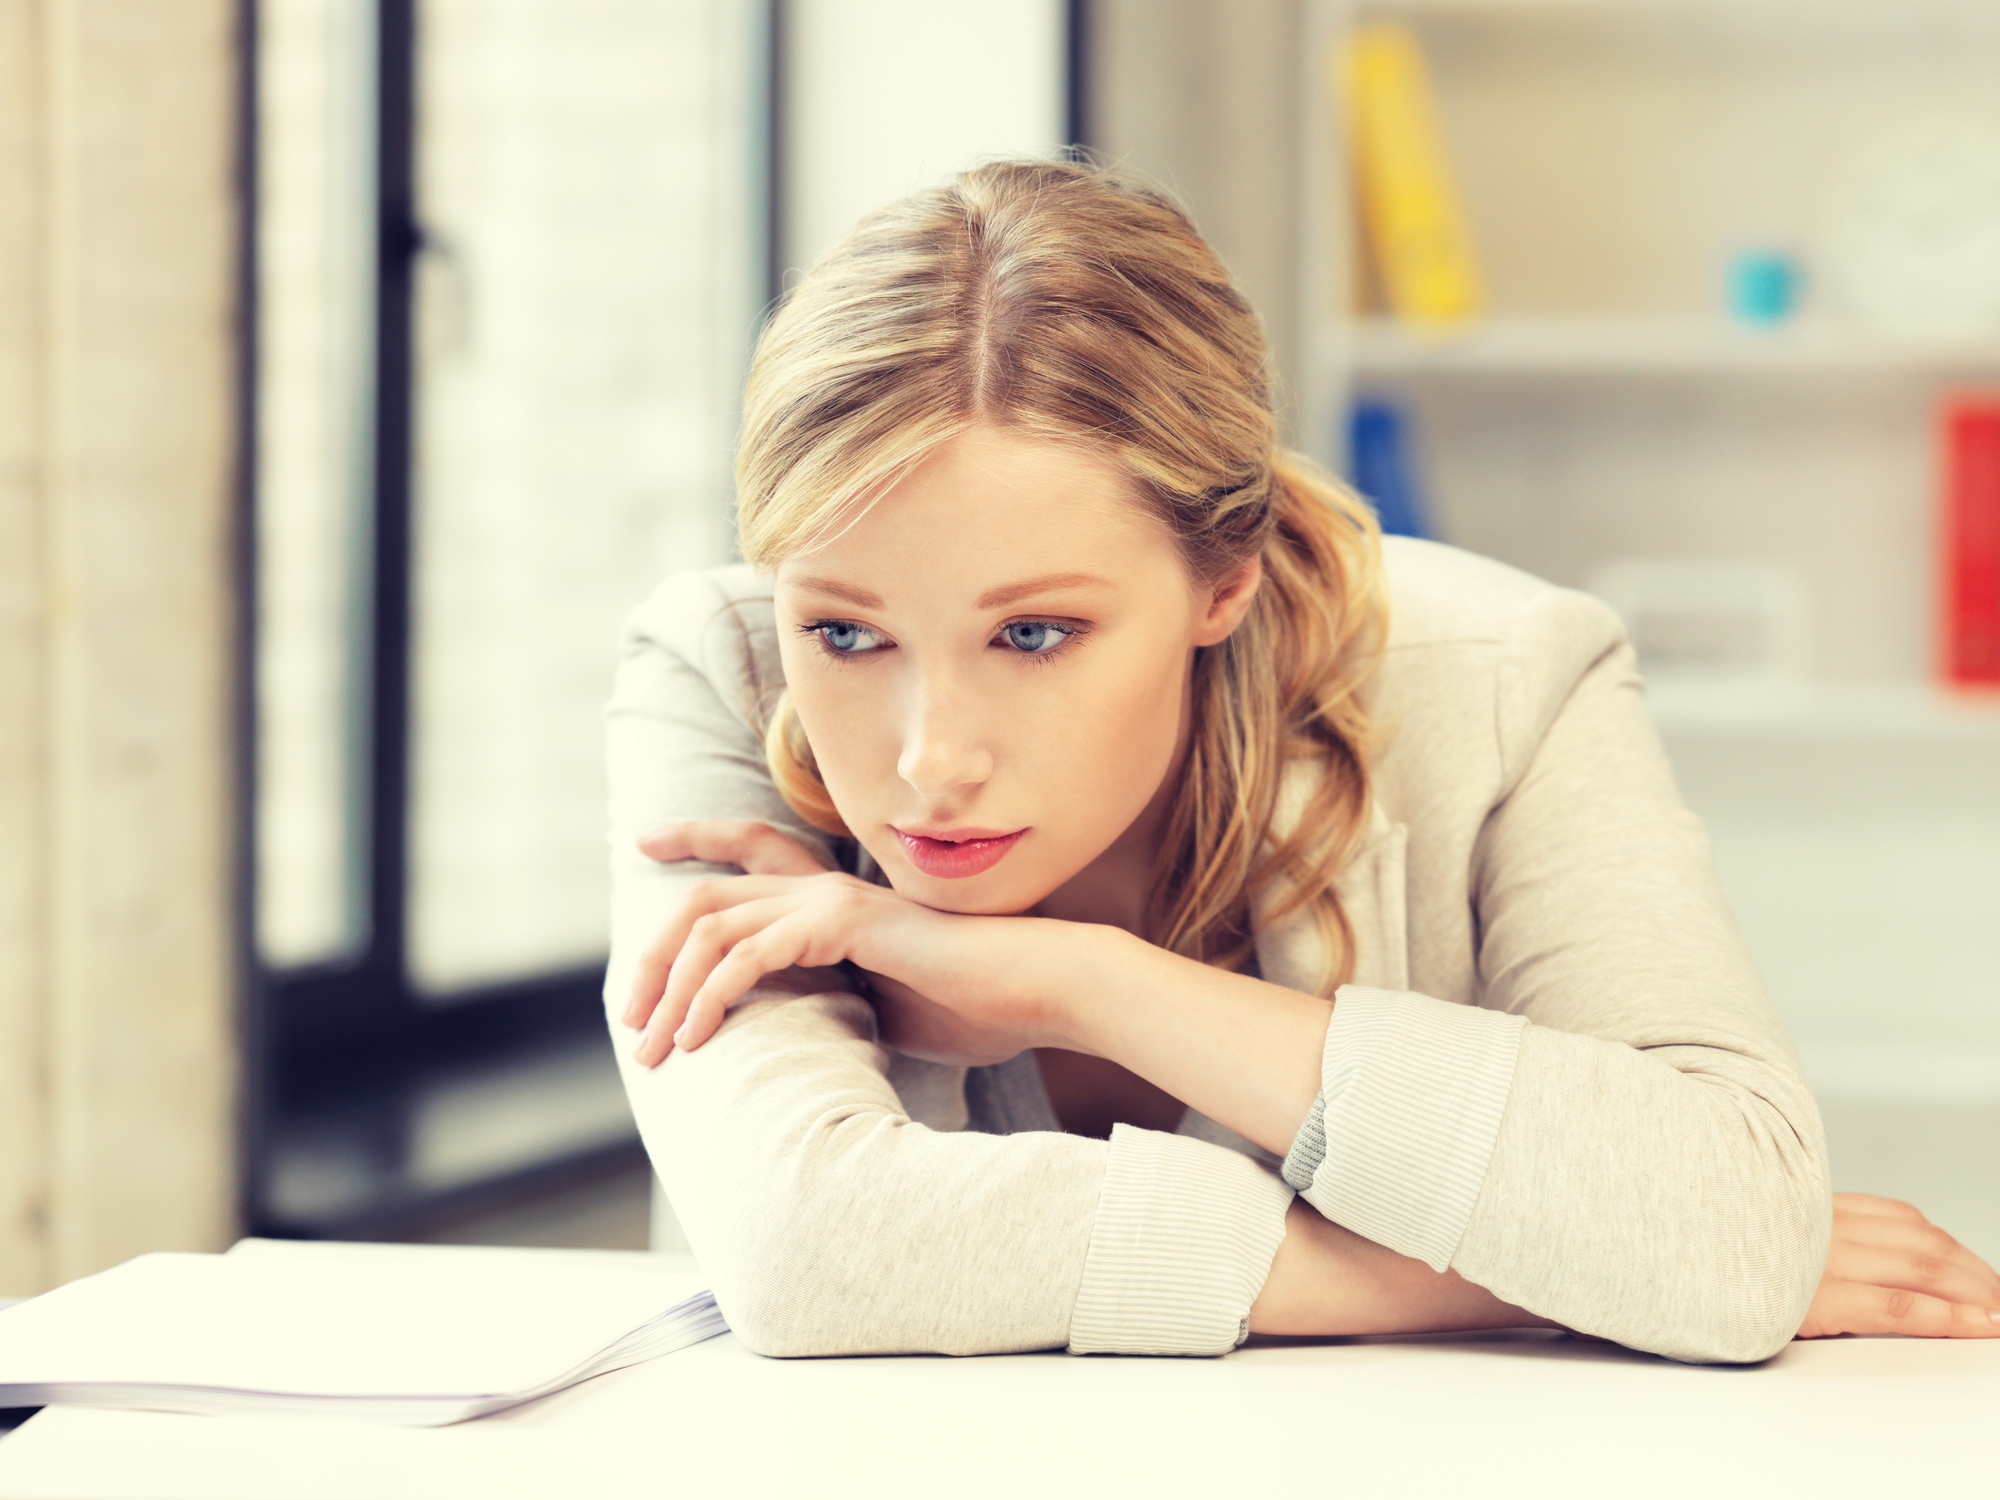 bright picture of unhappy woman in office